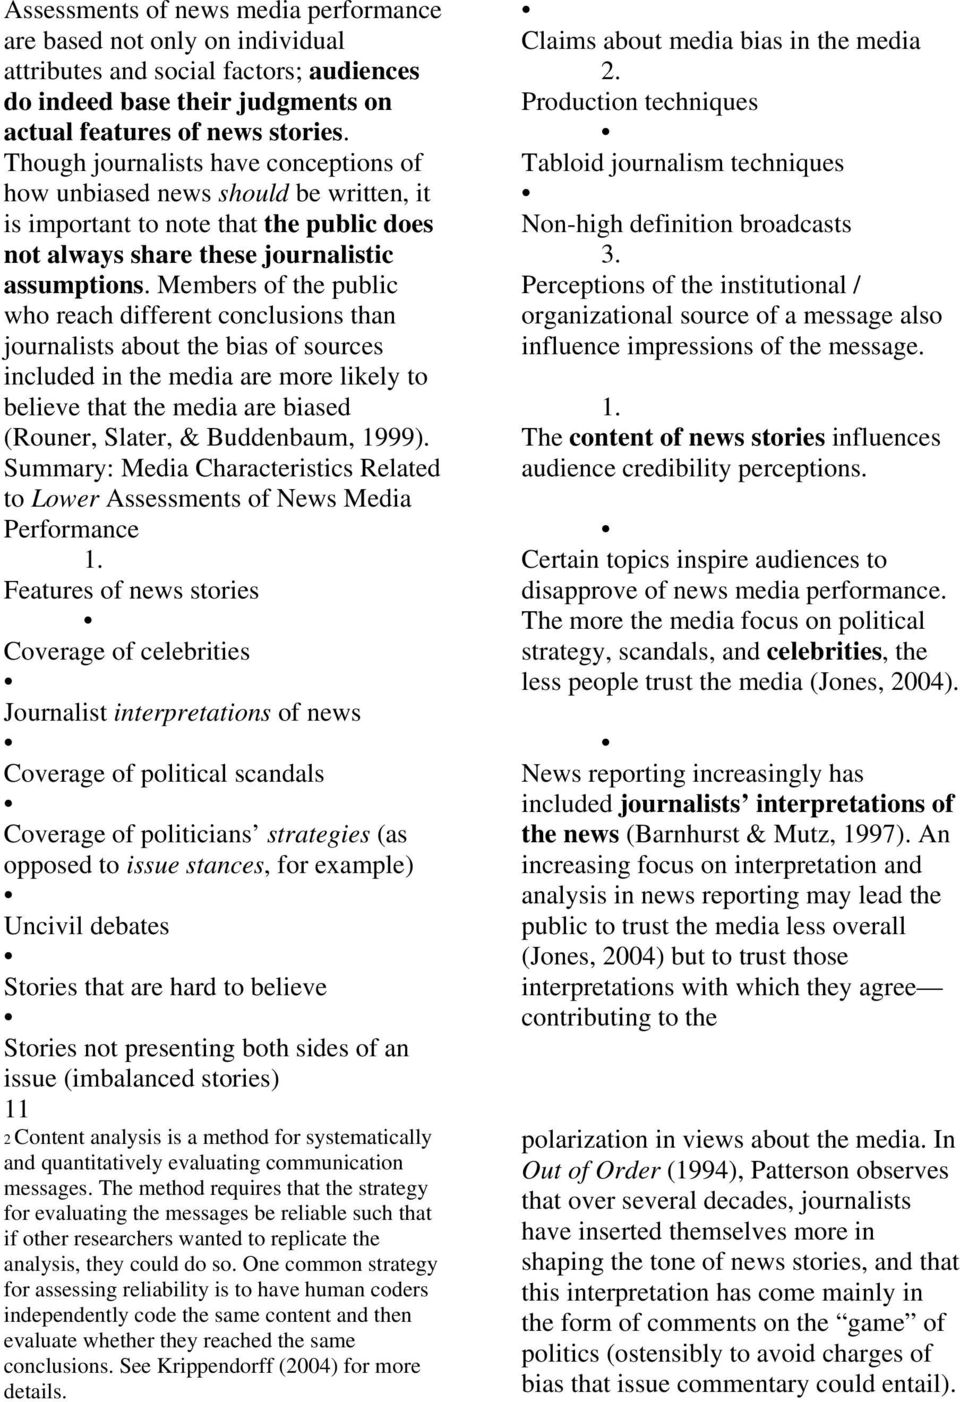 Members of the public who reach different conclusions than journalists about the bias of sources included in the media are more likely to believe that the media are biased (Rouner, Slater, &